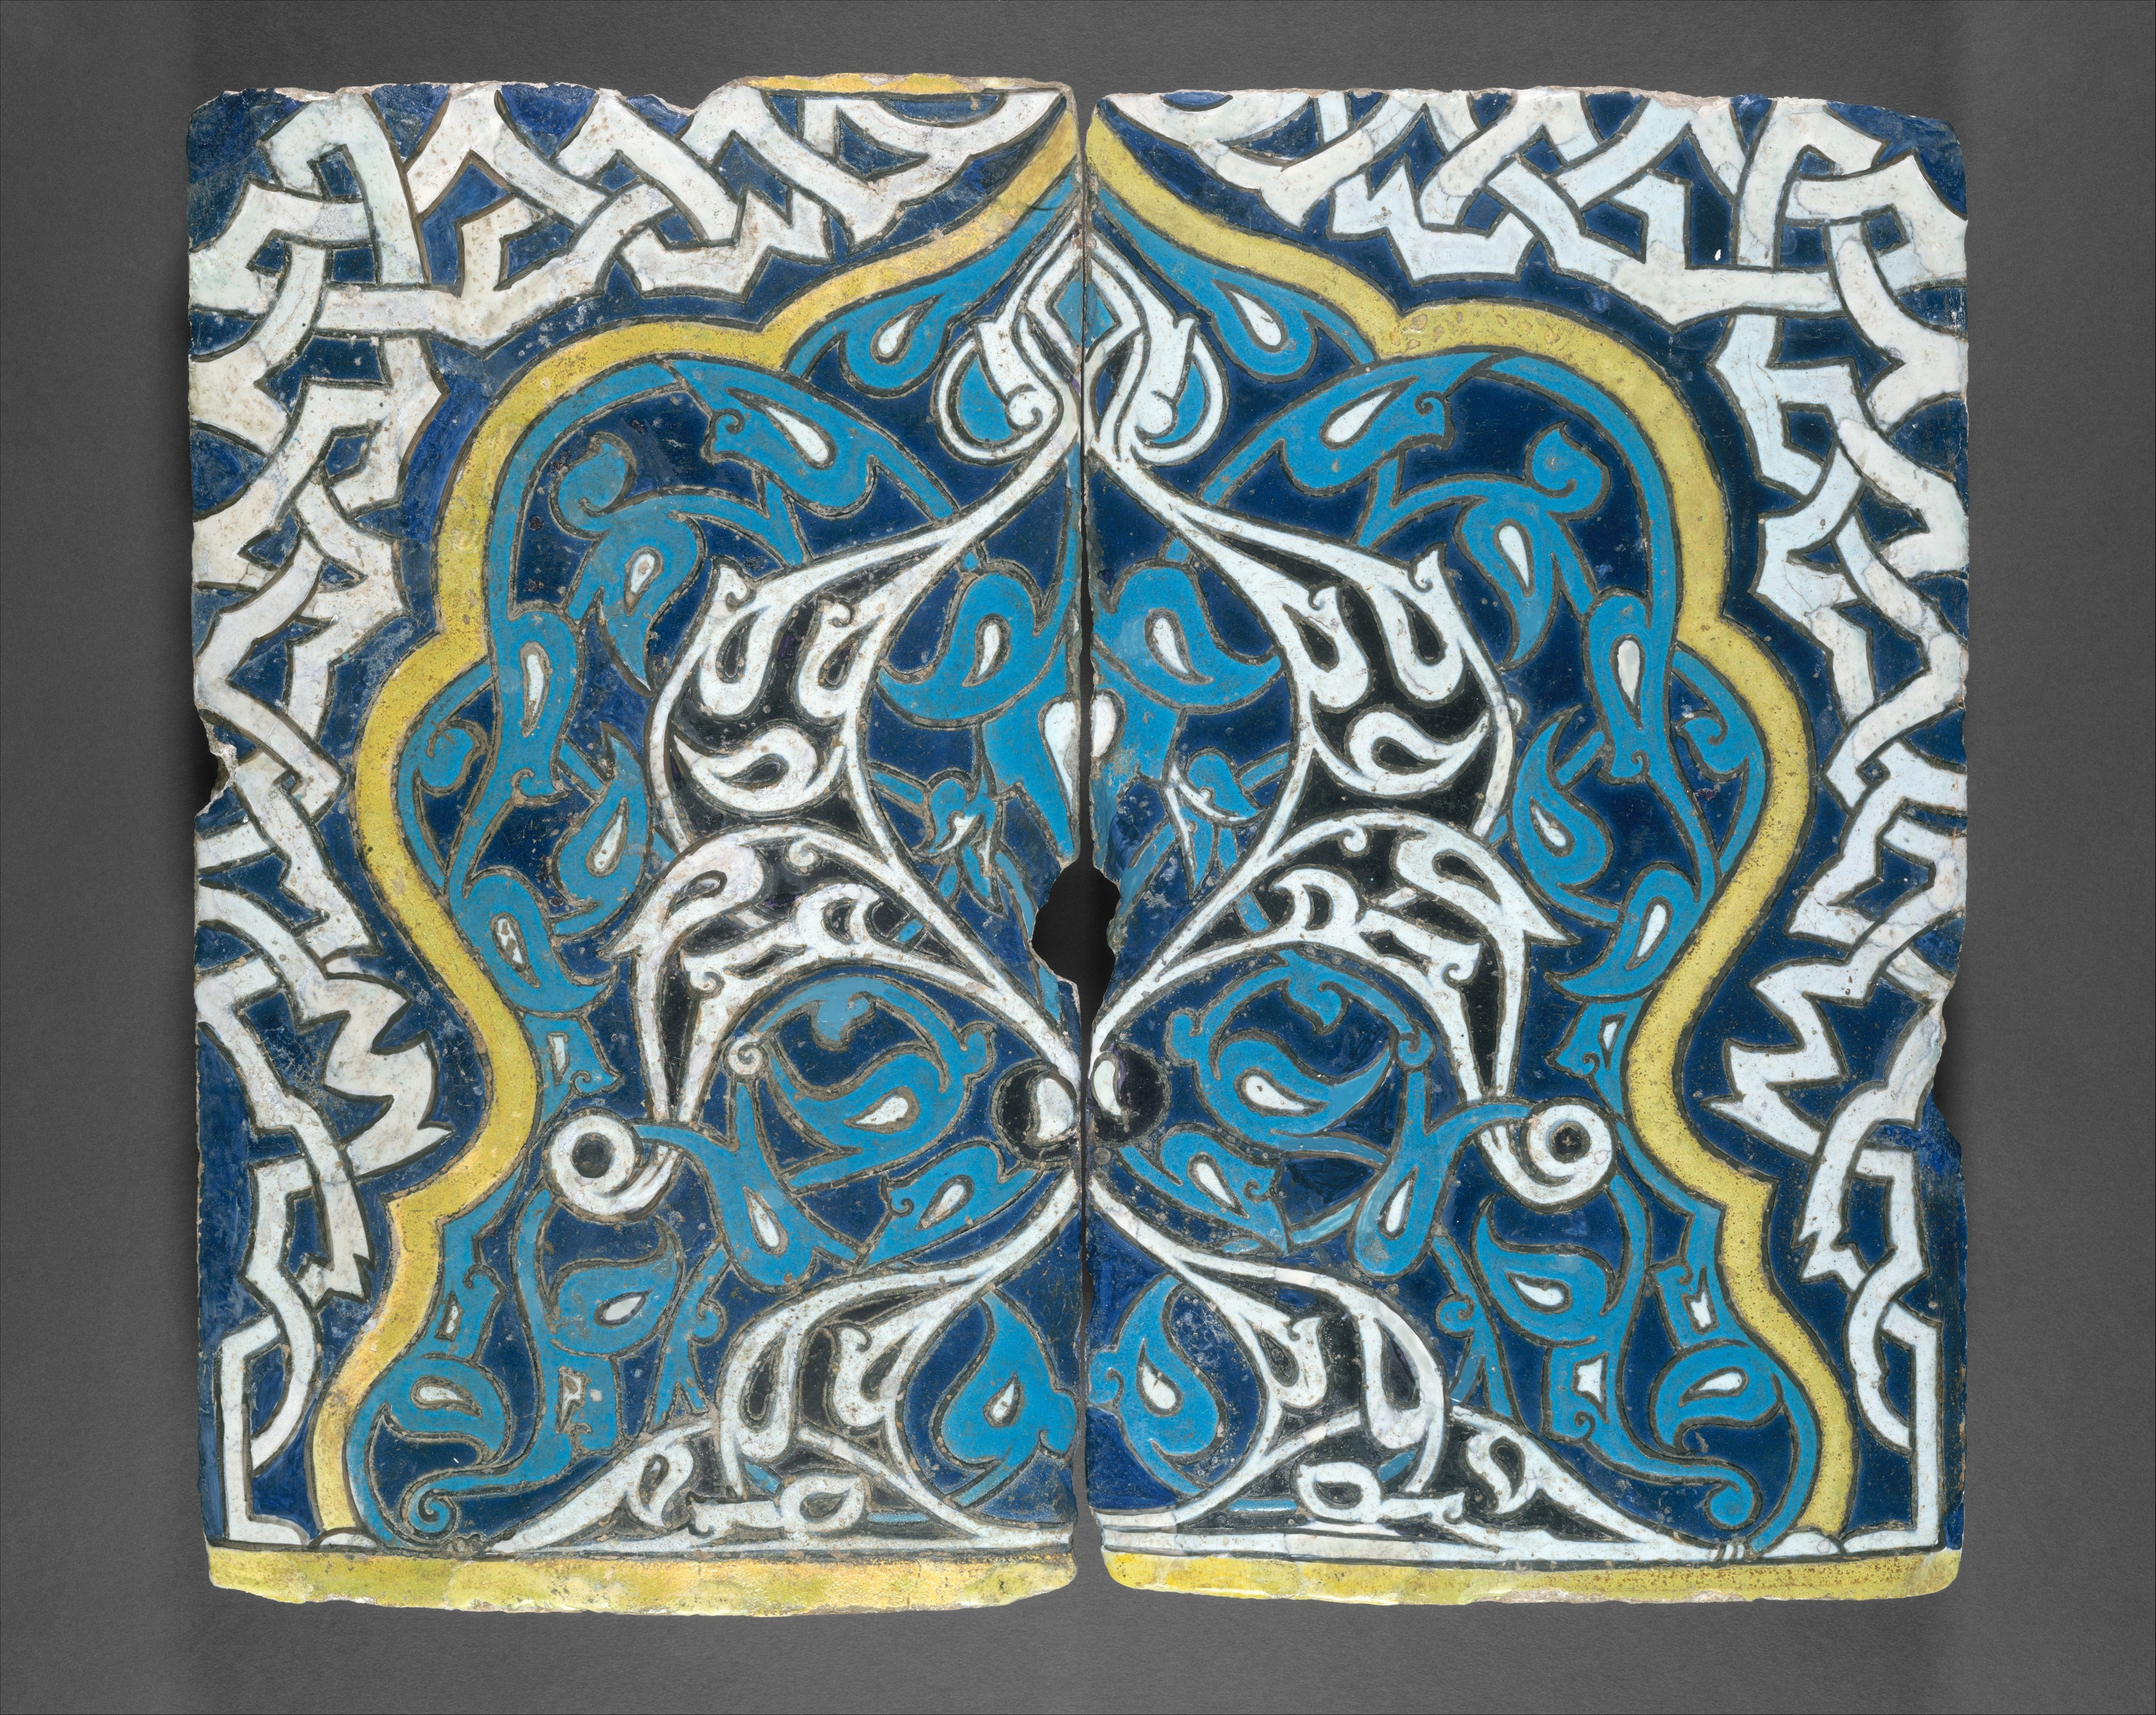 Shaped Tiles in the \'Cuerda Seca\' Technique | The Met